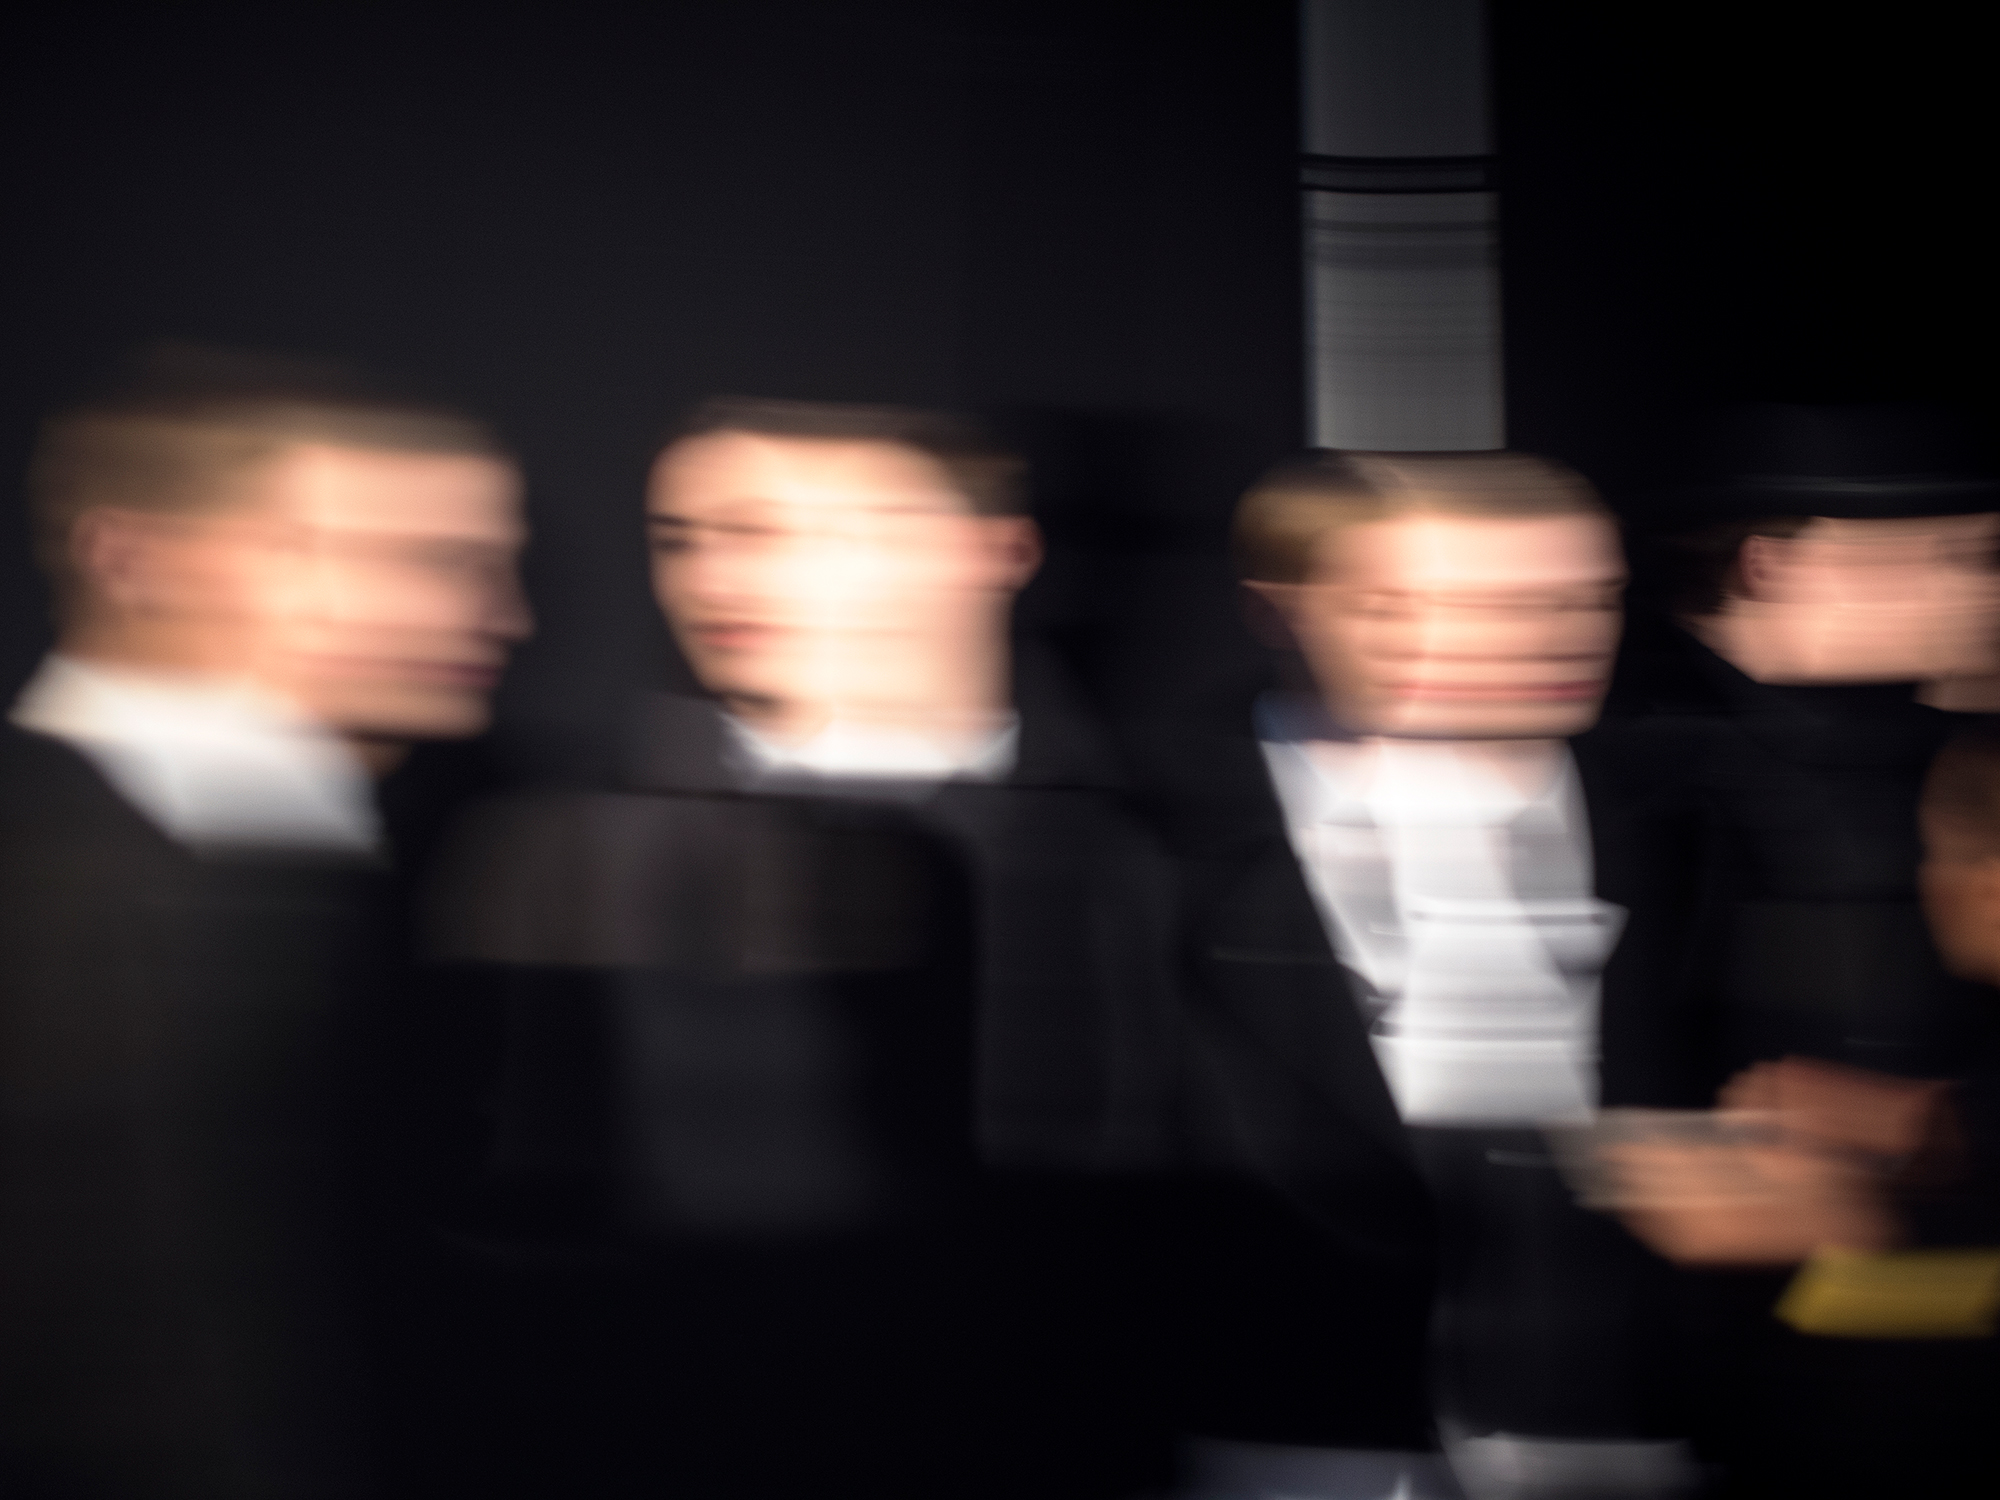 A conglomeration of images from various backstage assignments shot for GQ,Tumblr, Details, Thom Browne, and more.